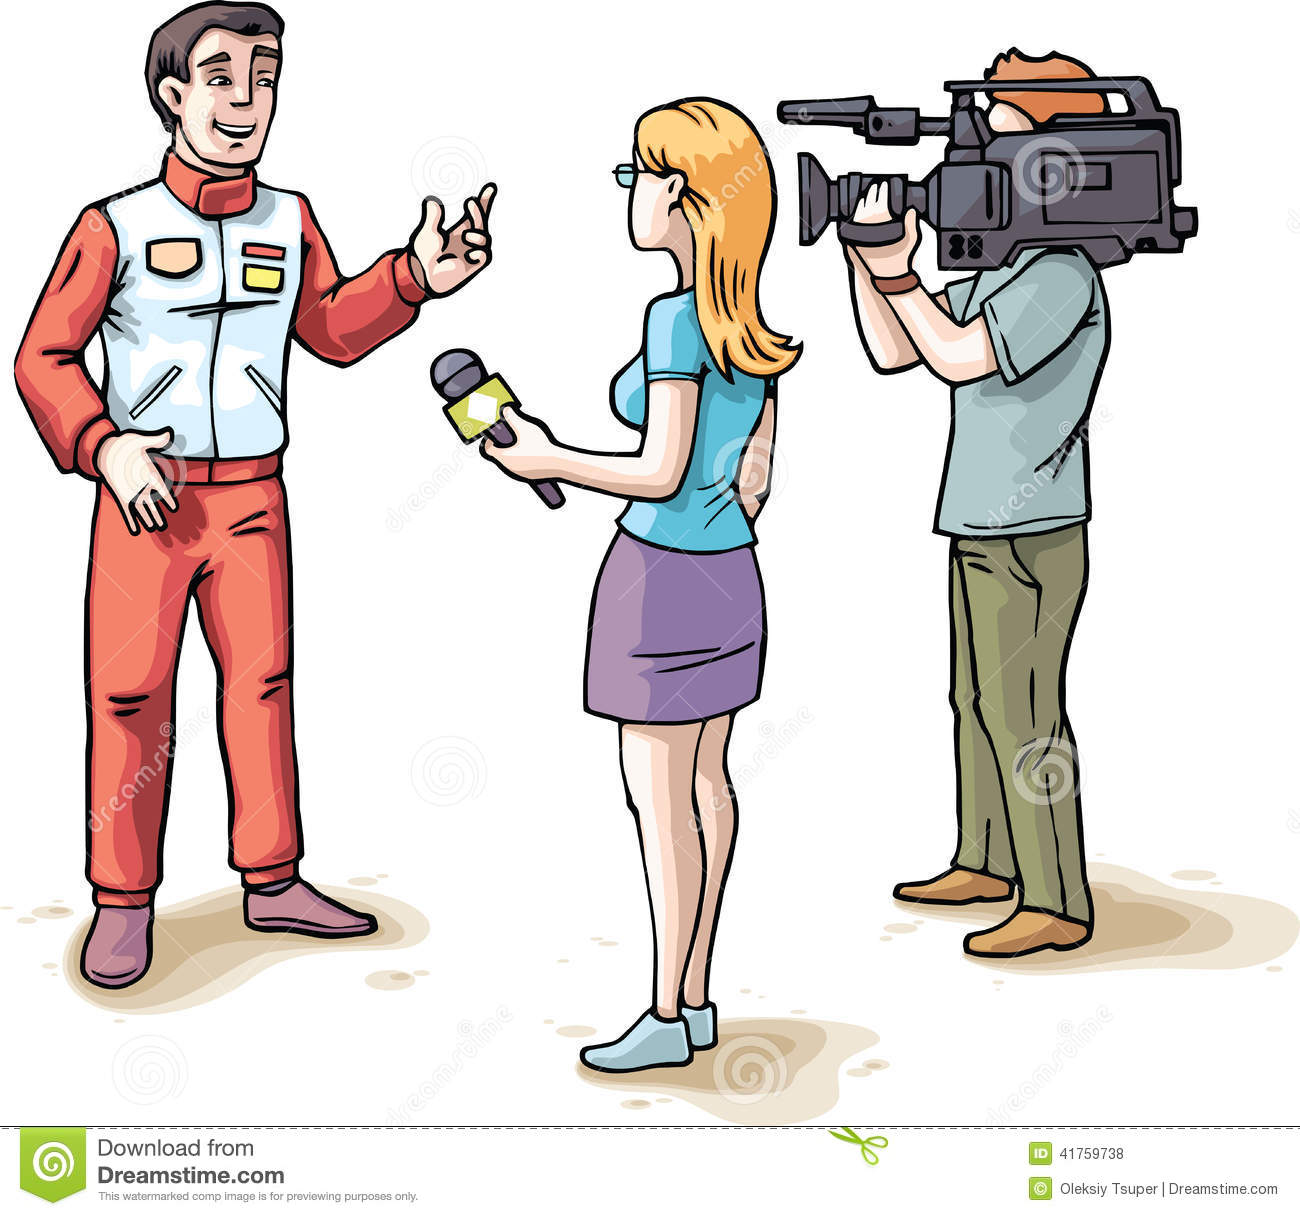 office uniform design latest with Stock Illustration Interview Racer Young Female Journalist Camera Operator Filming Glad Wearing Red Sports Team Image41759738 on Policeman also 388335176 besides Weldingfabricationservice further Stock Illustration Interview Racer Young Female Journalist Camera Operator Filming Glad Wearing Red Sports Team Image41759738 in addition School Secretary 6159281.